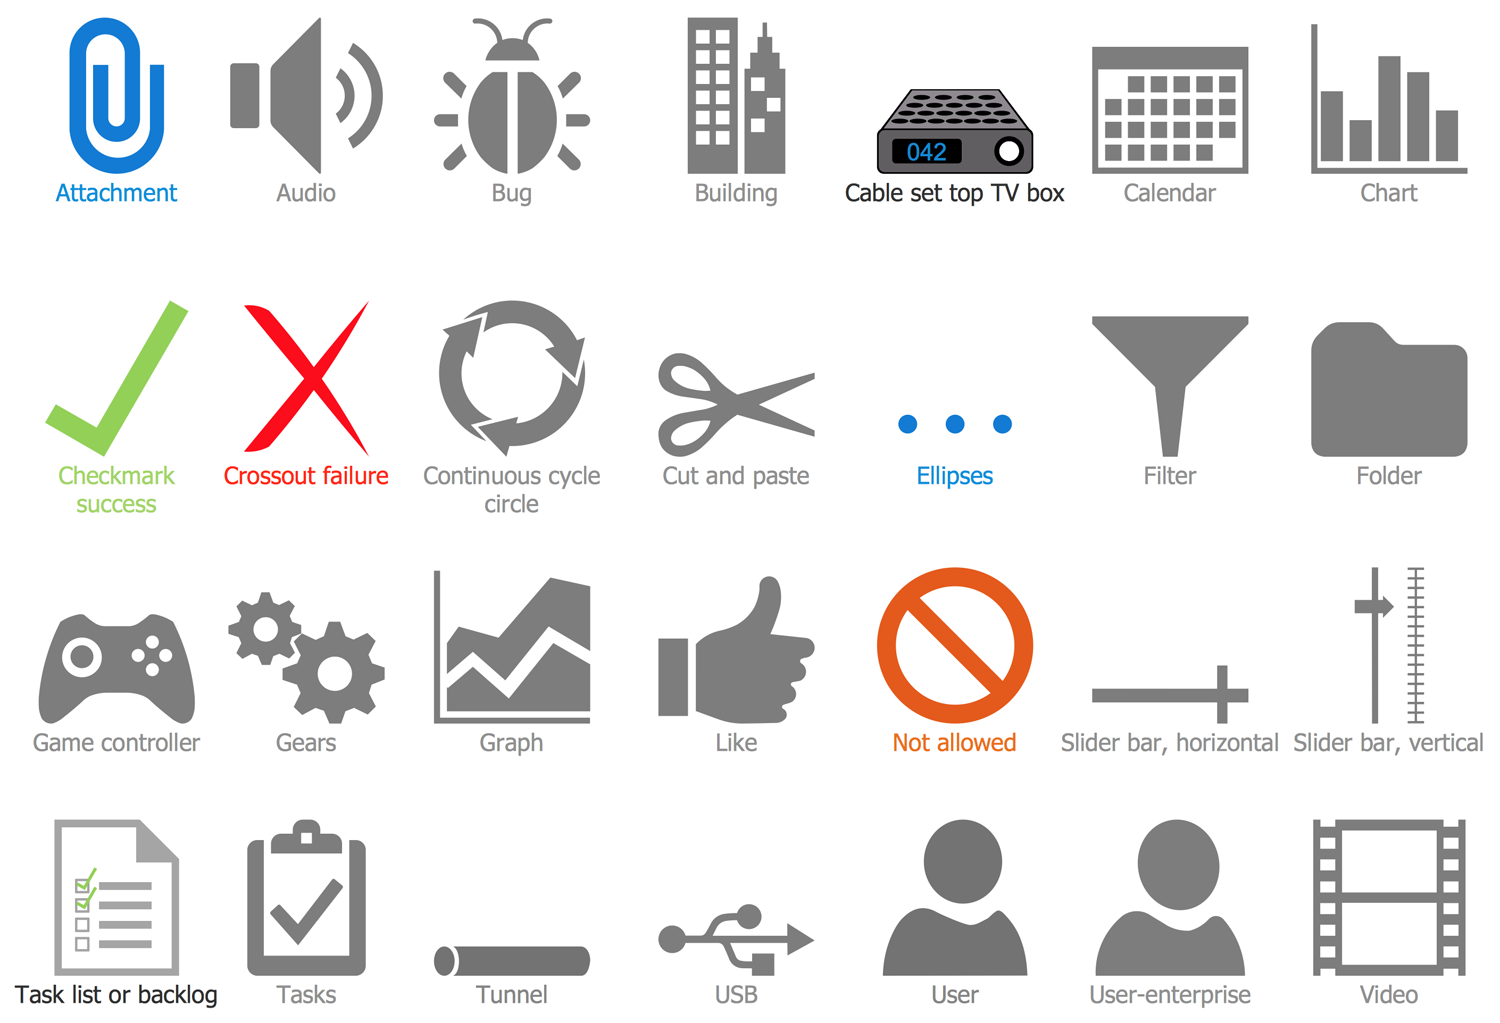 Design Elements Microsoft Azure Architecture — Symbols